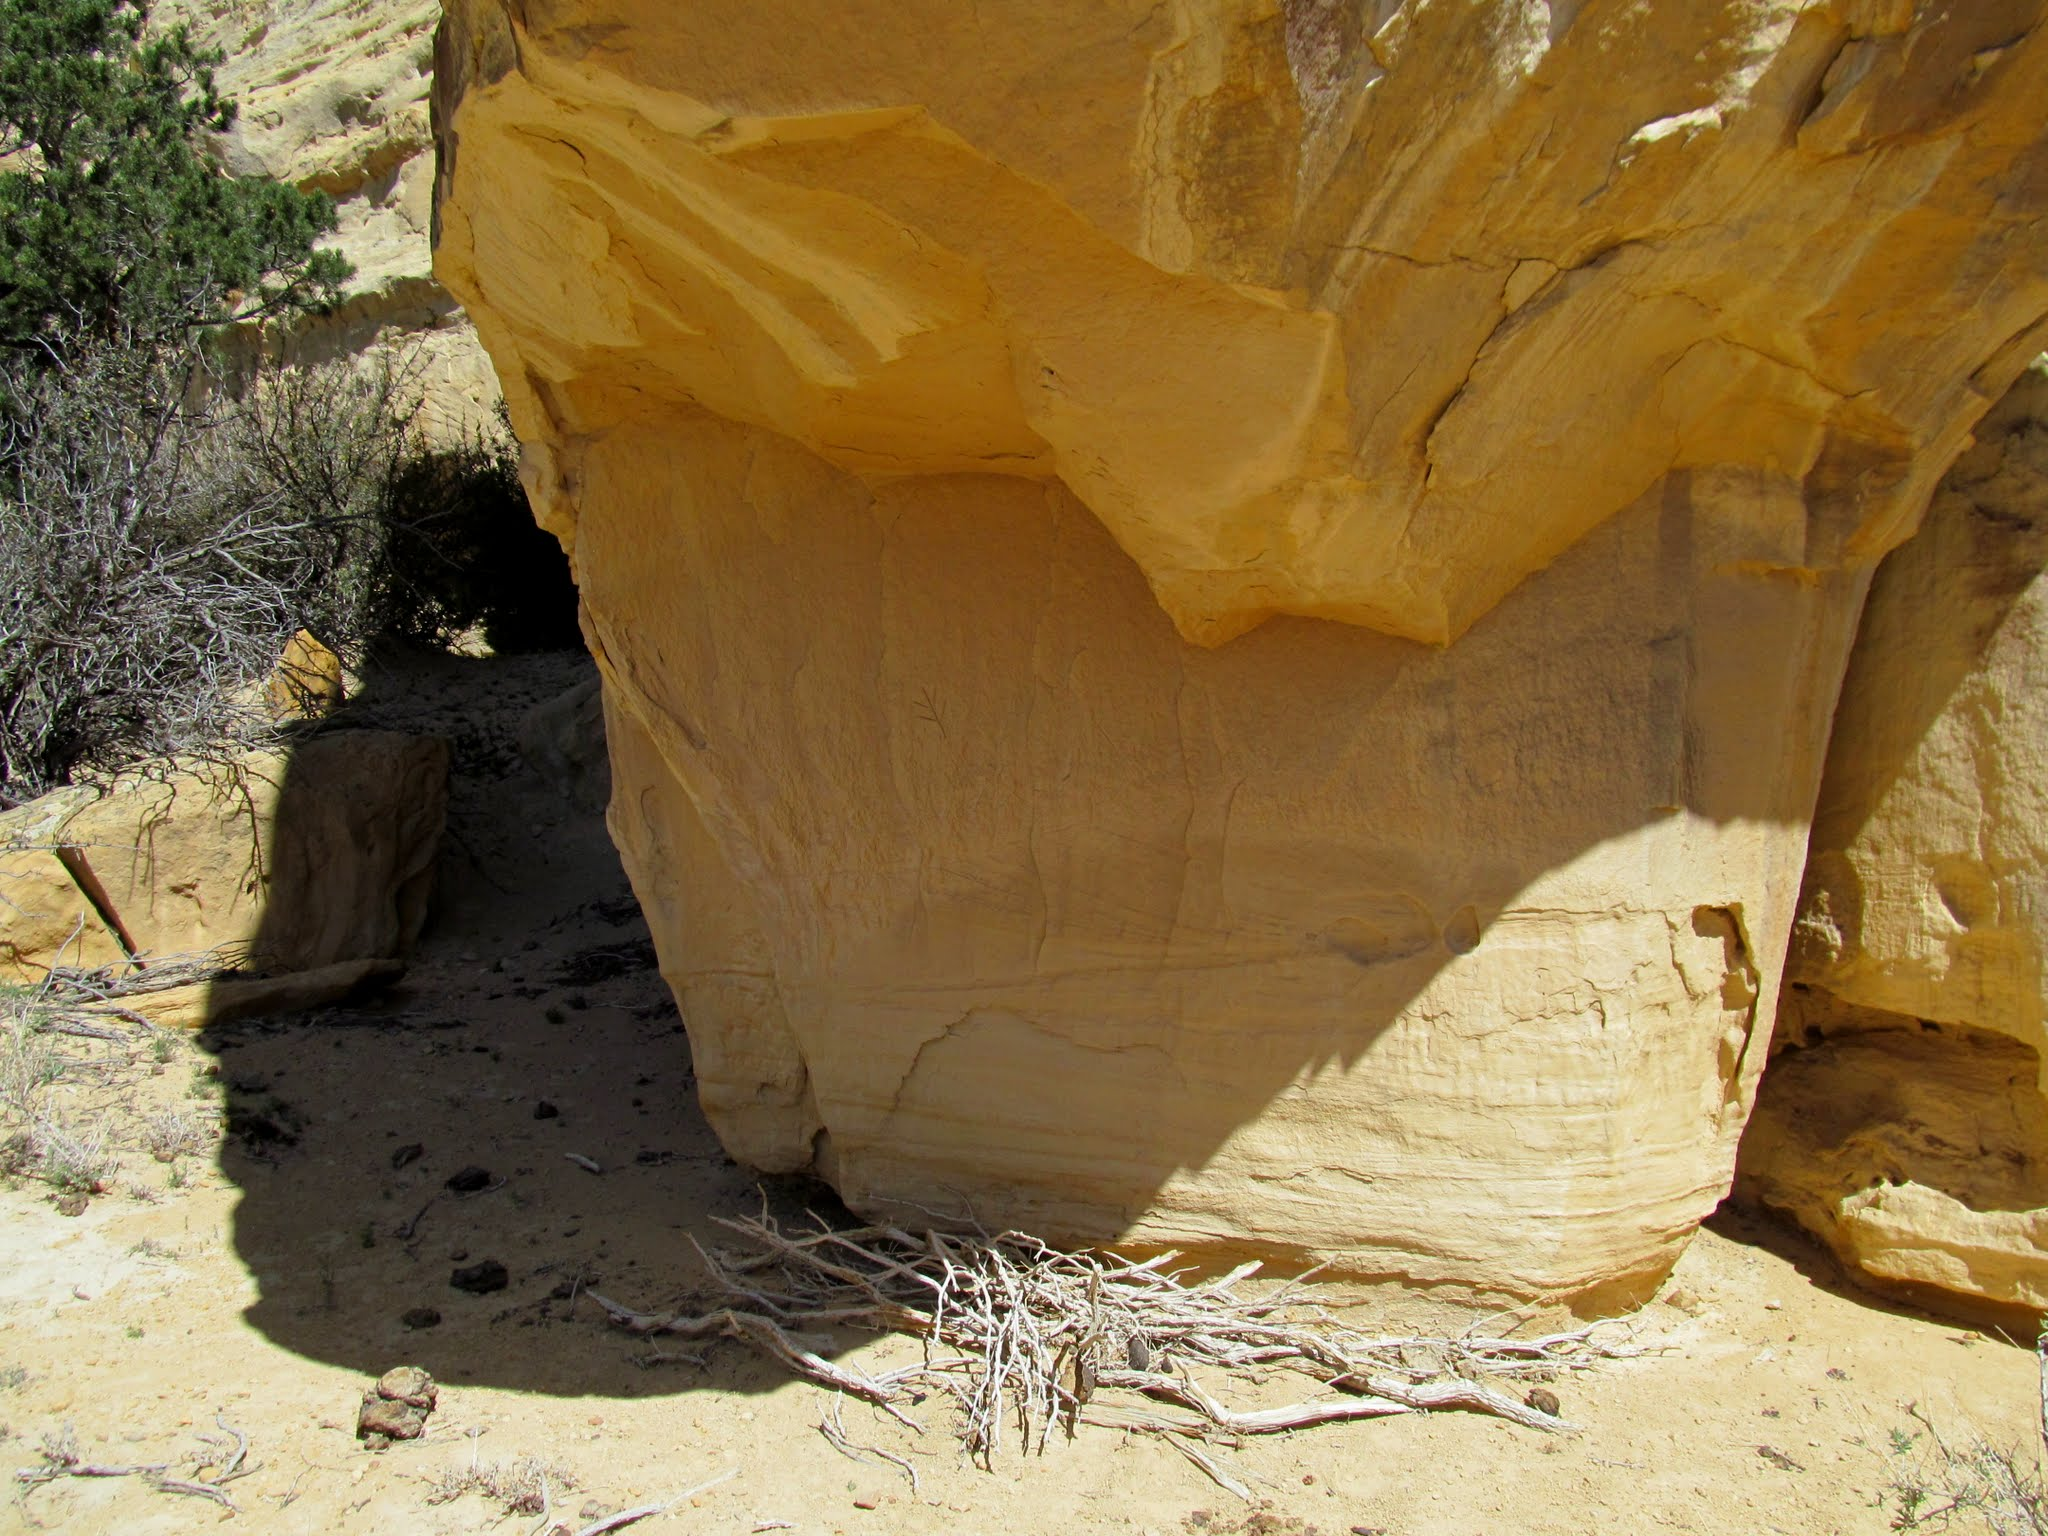 Photo: Overhang with inscriptions and a small pile of fire wood